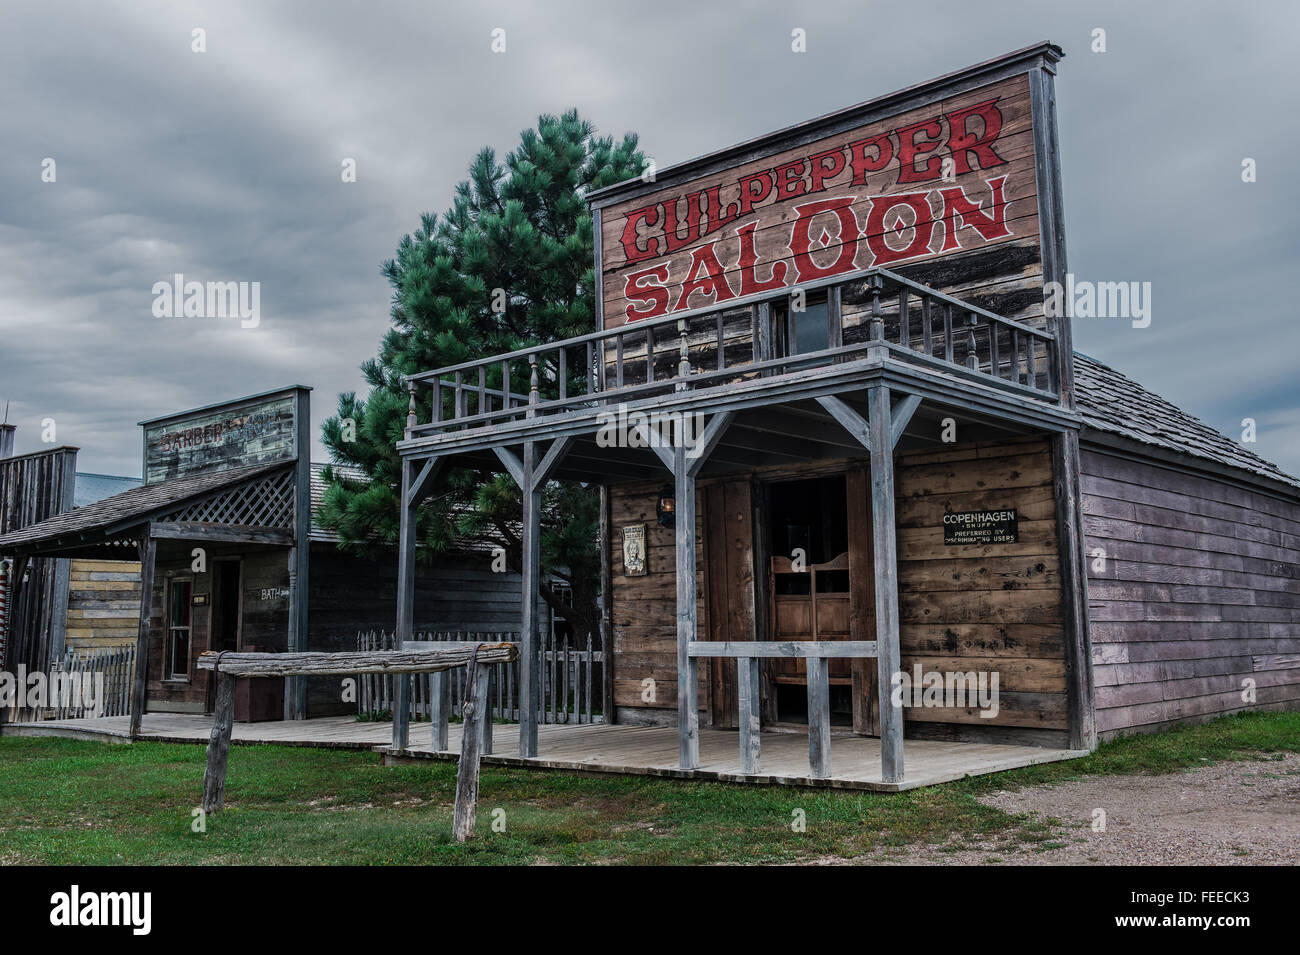 Replica of an old saloon - Stock Image